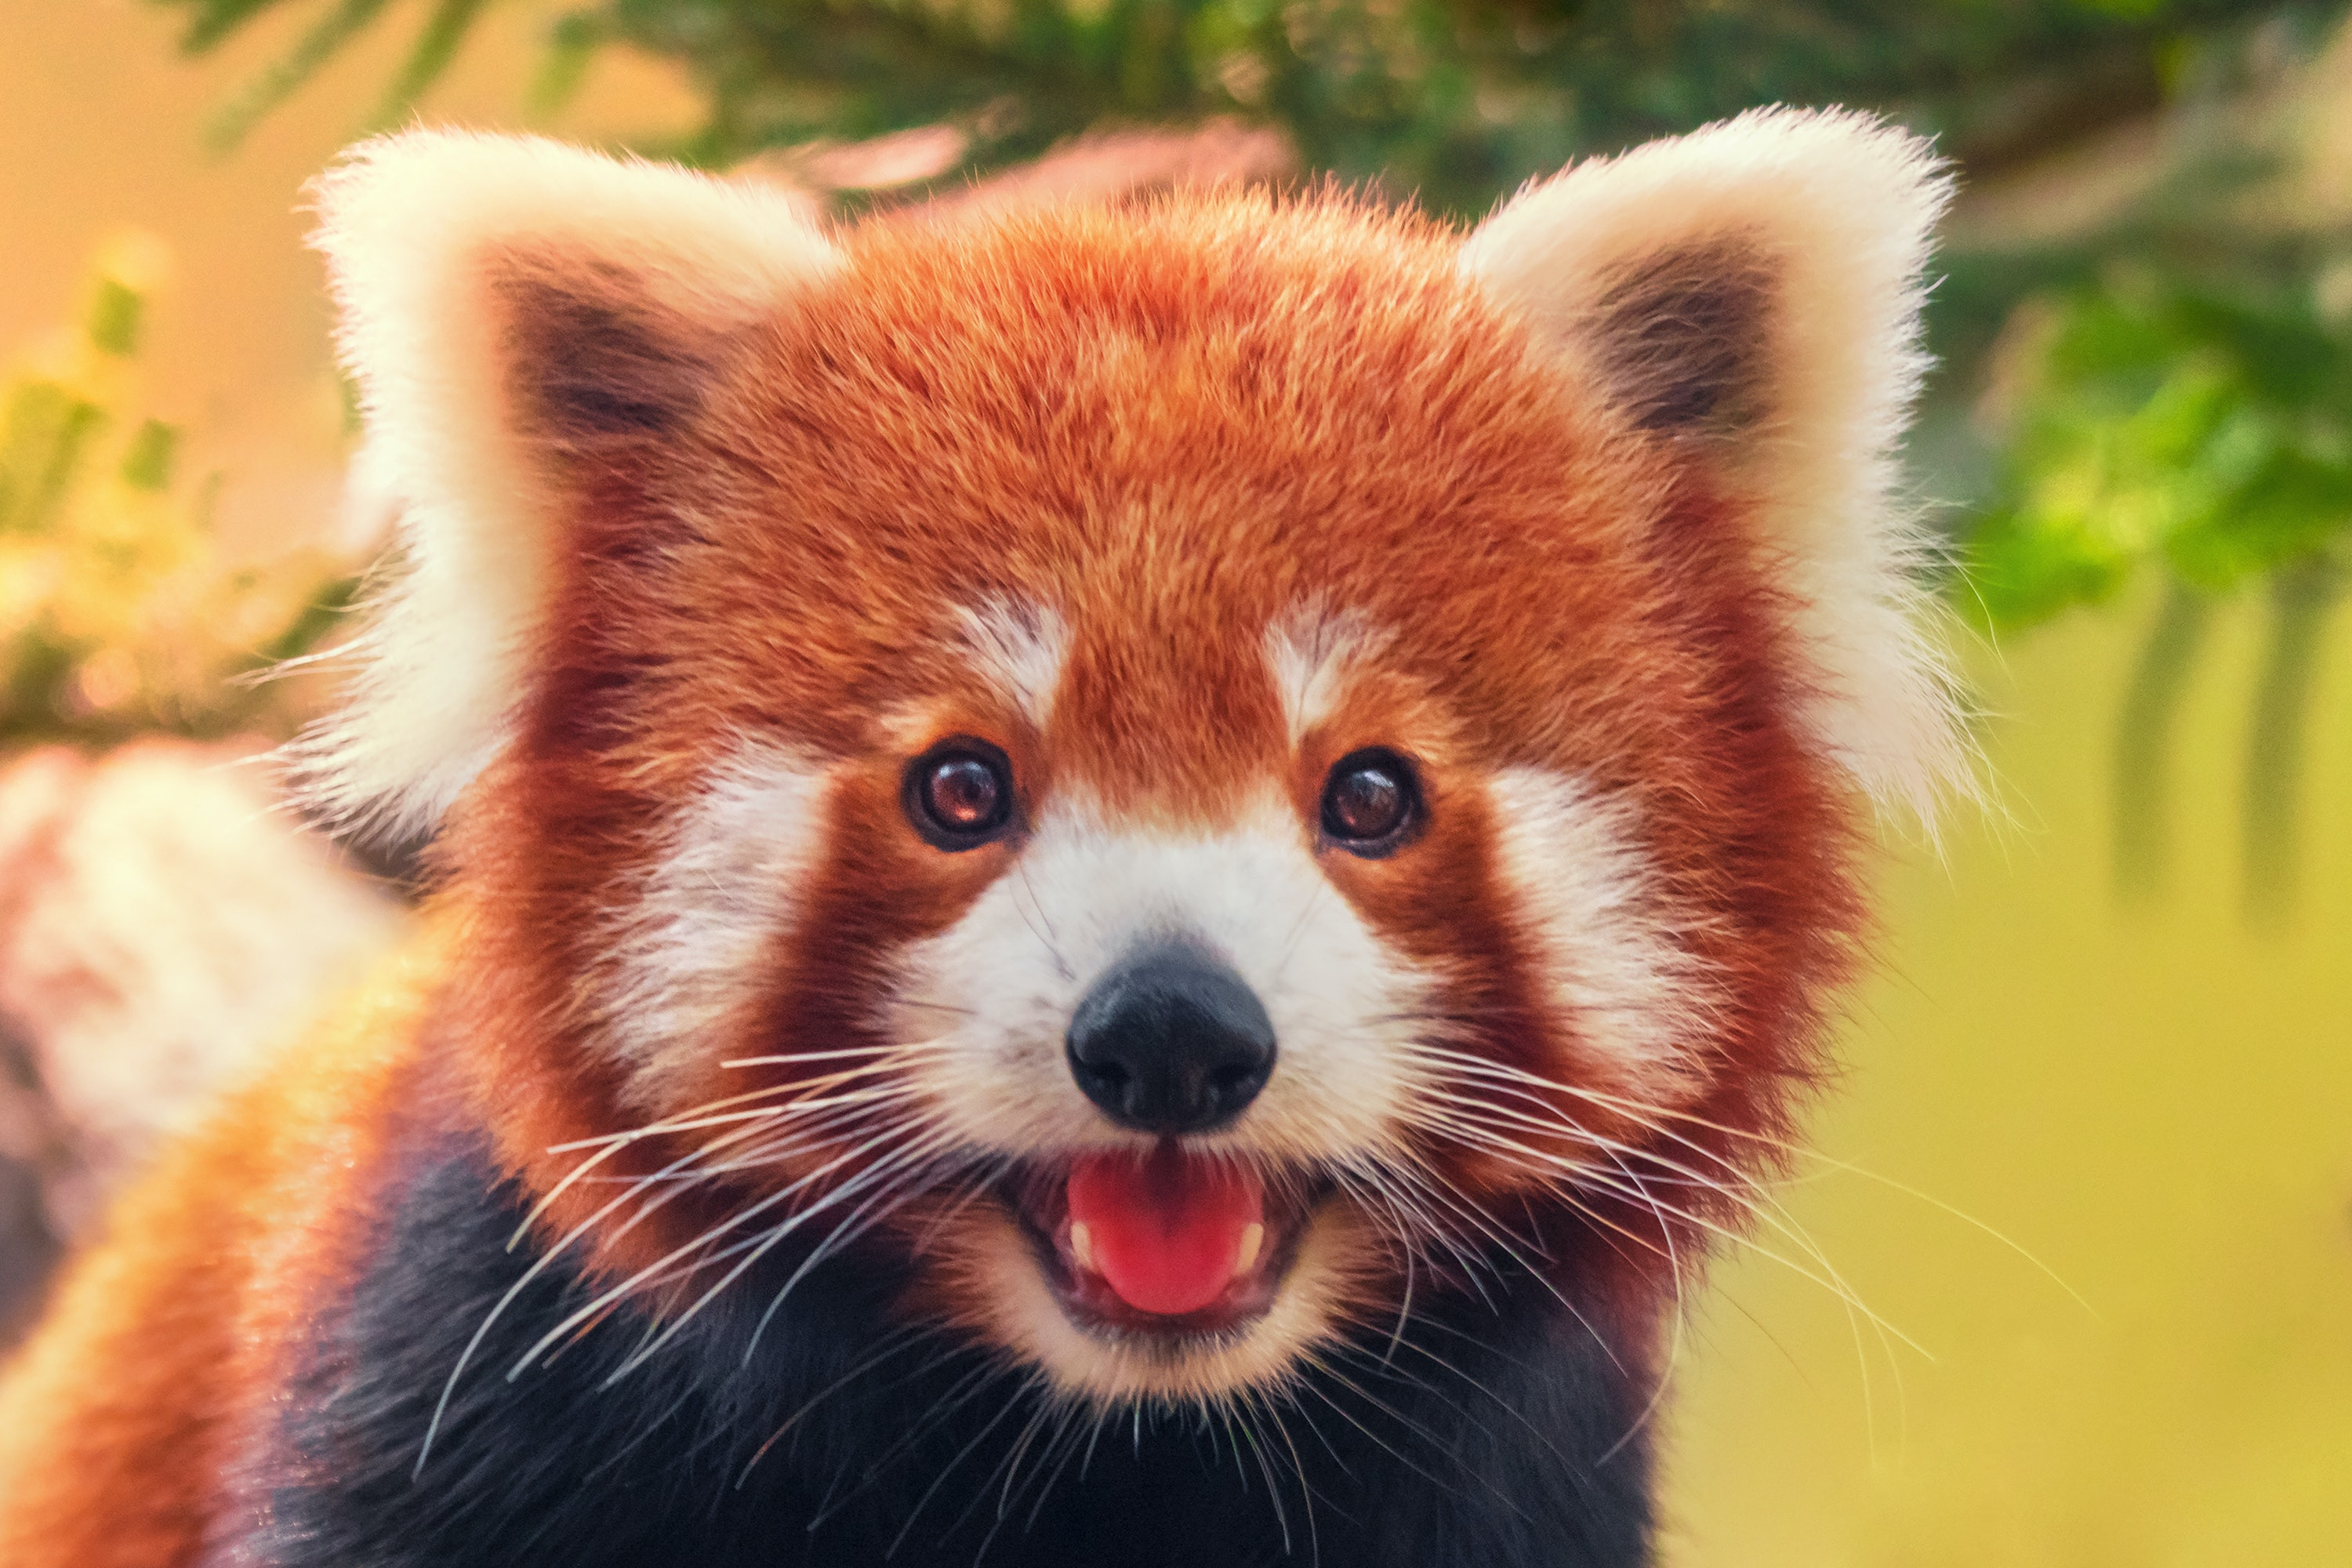 The Cutest Animal In The World Has A Rival